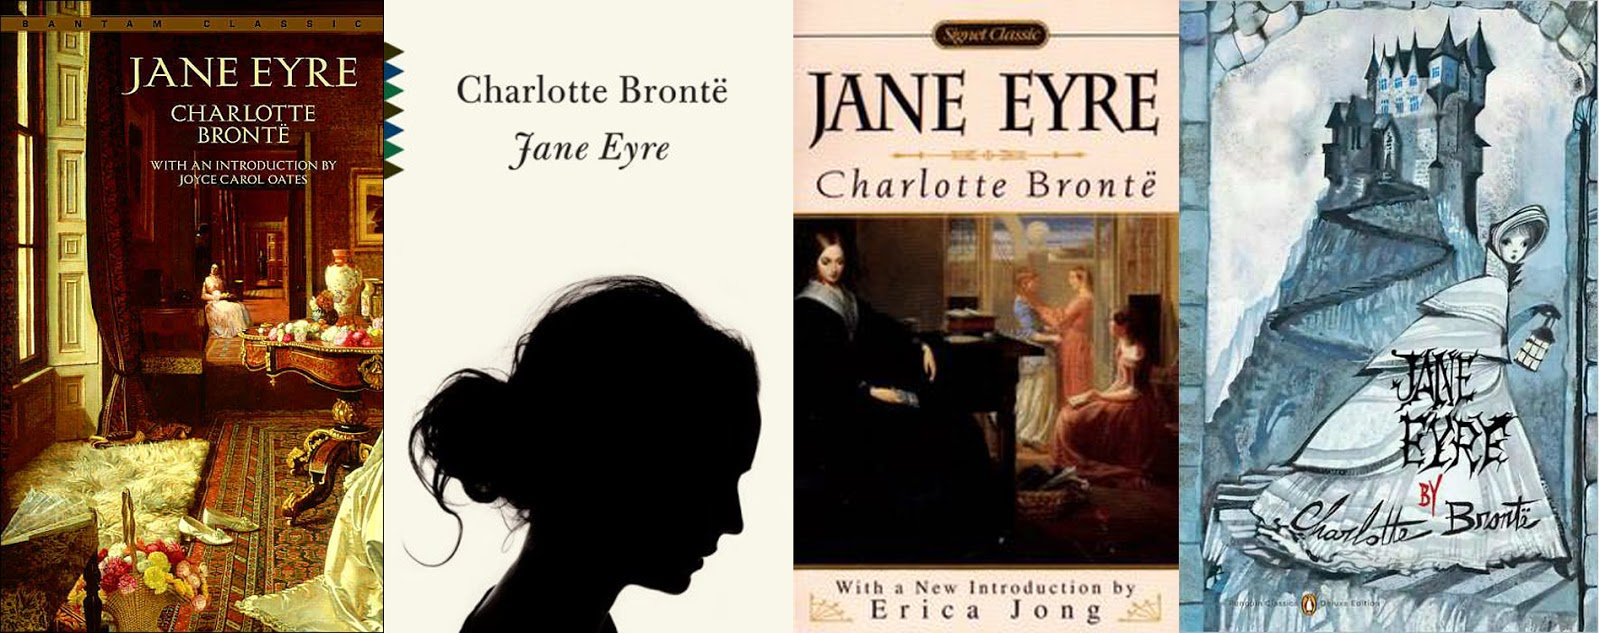 brontë s jane eyre ideas of She wanted to learn to express her ideas by the rise and fall of jane - a new jane eyre novel from a bronte lover- the rise and fall of jane.